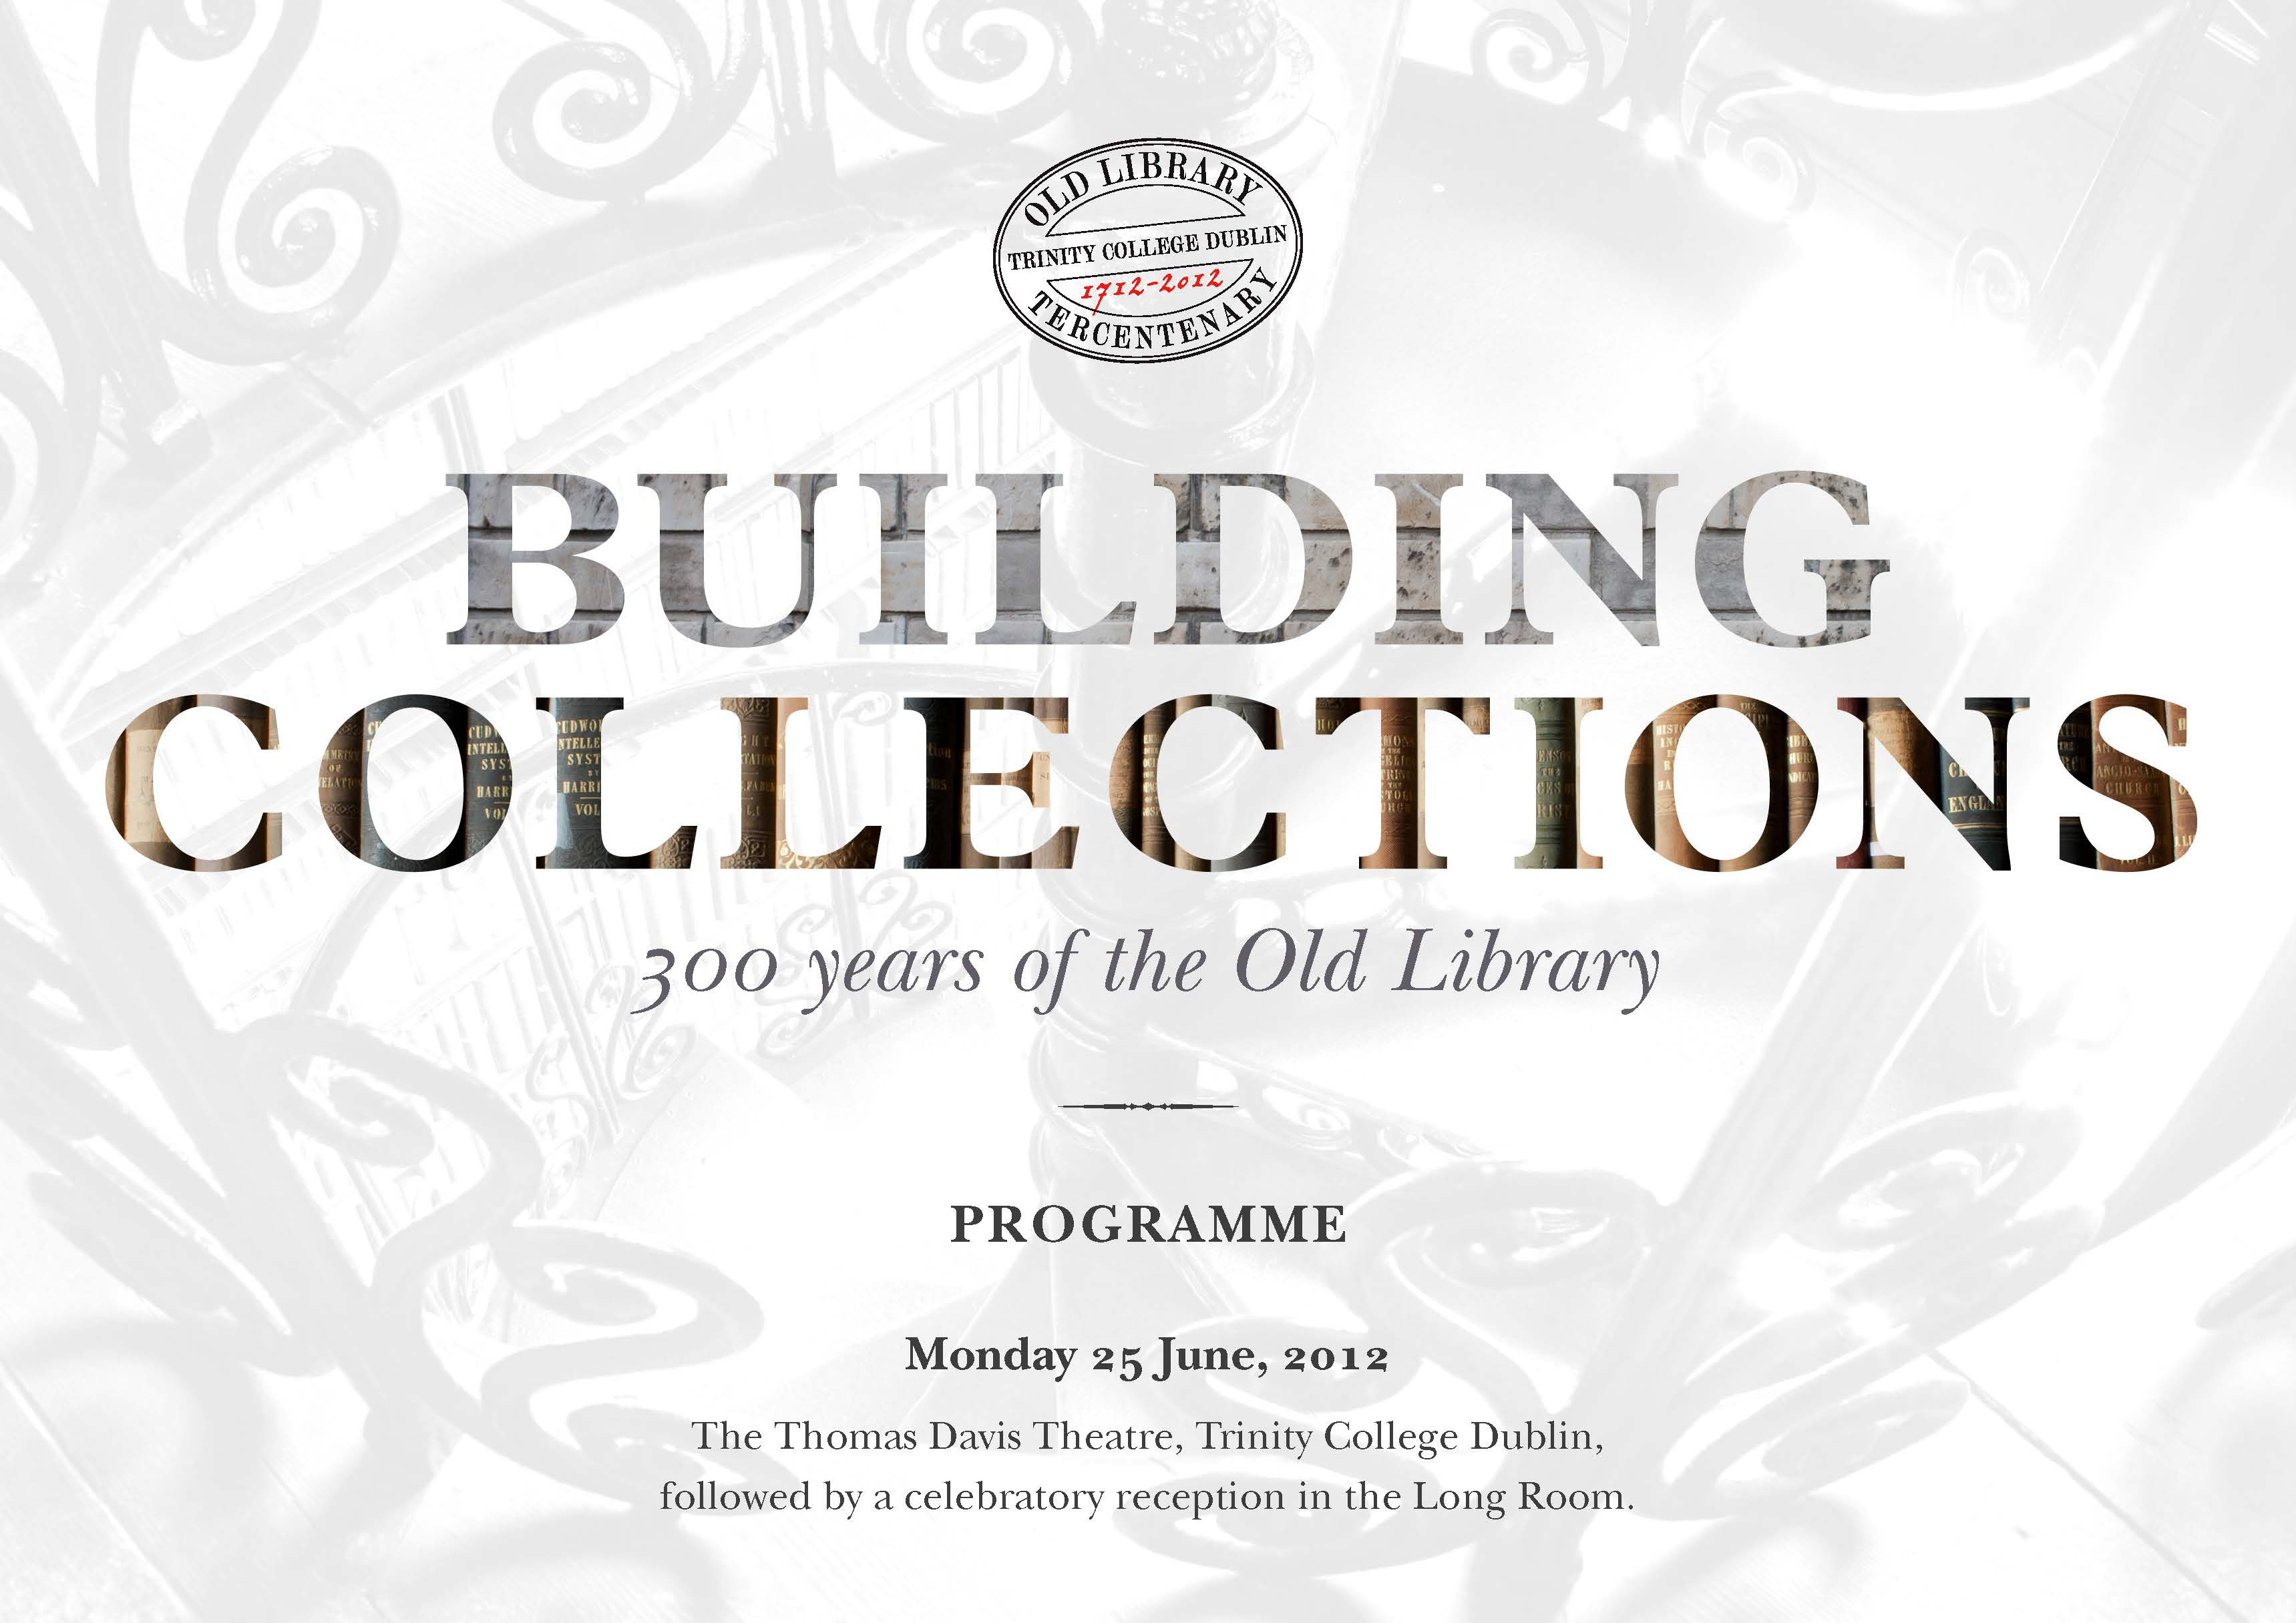 Building Collections: 300 years of the Old Library. Programme. Monday 25th June, 2012. The Thomas Davis Theatre, Trinity College Dublin, followed by a celebratory reception in the Long Room.